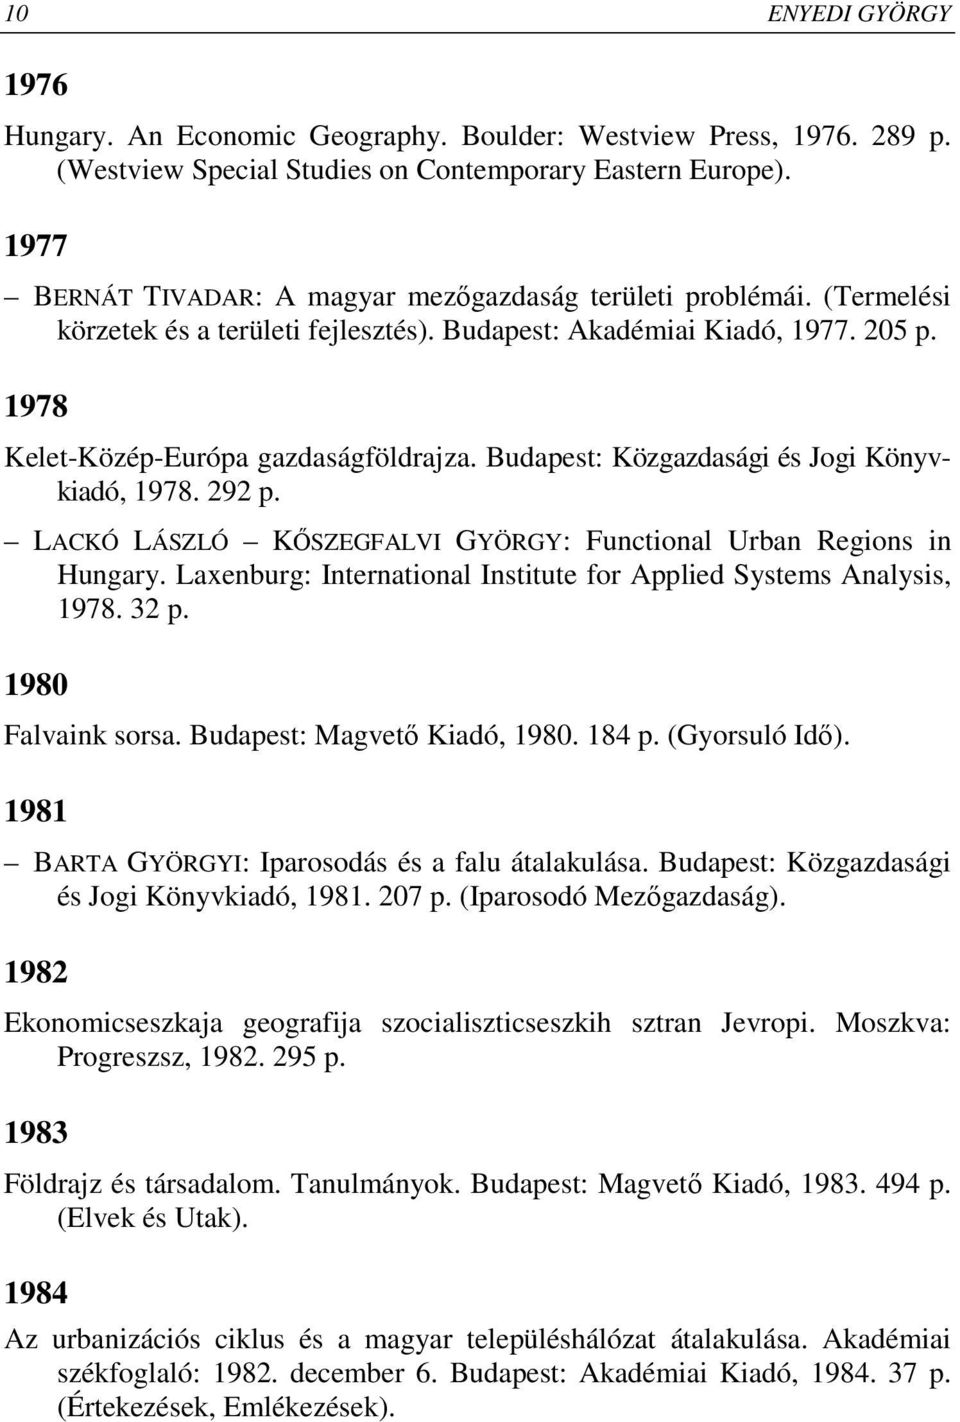 Budapest: Közgazdasági és Jogi Könyvkiadó, 1978. 292 p. LACKÓ LÁSZLÓ KİSZEGFALVI GYÖRGY: Functional Urban Regions in Hungary. Laxenburg: International Institute for Applied Systems Analysis, 1978.